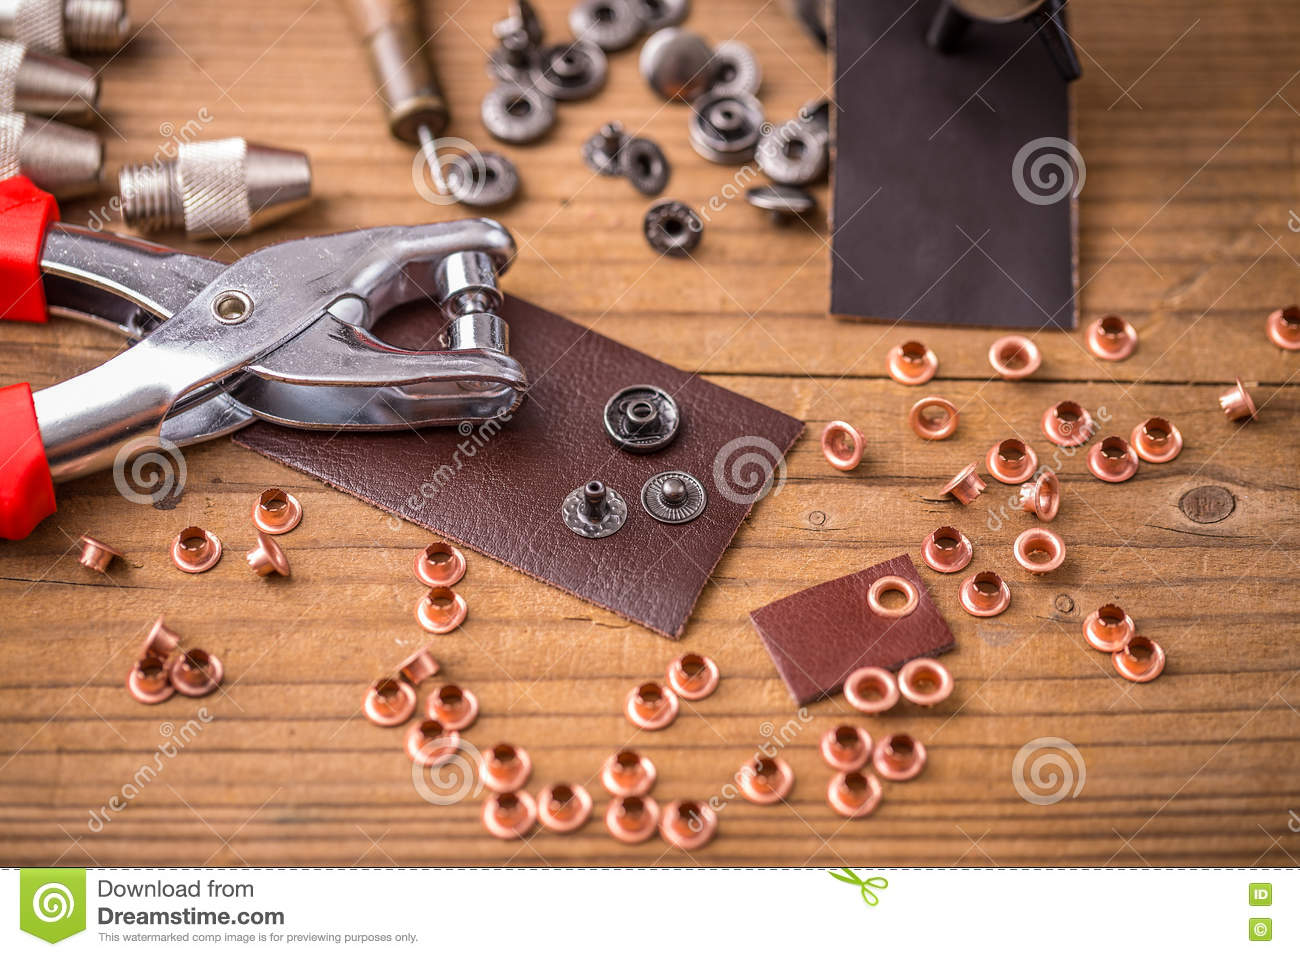 Hole punch plier tool stock photo  Image of buckle, brass